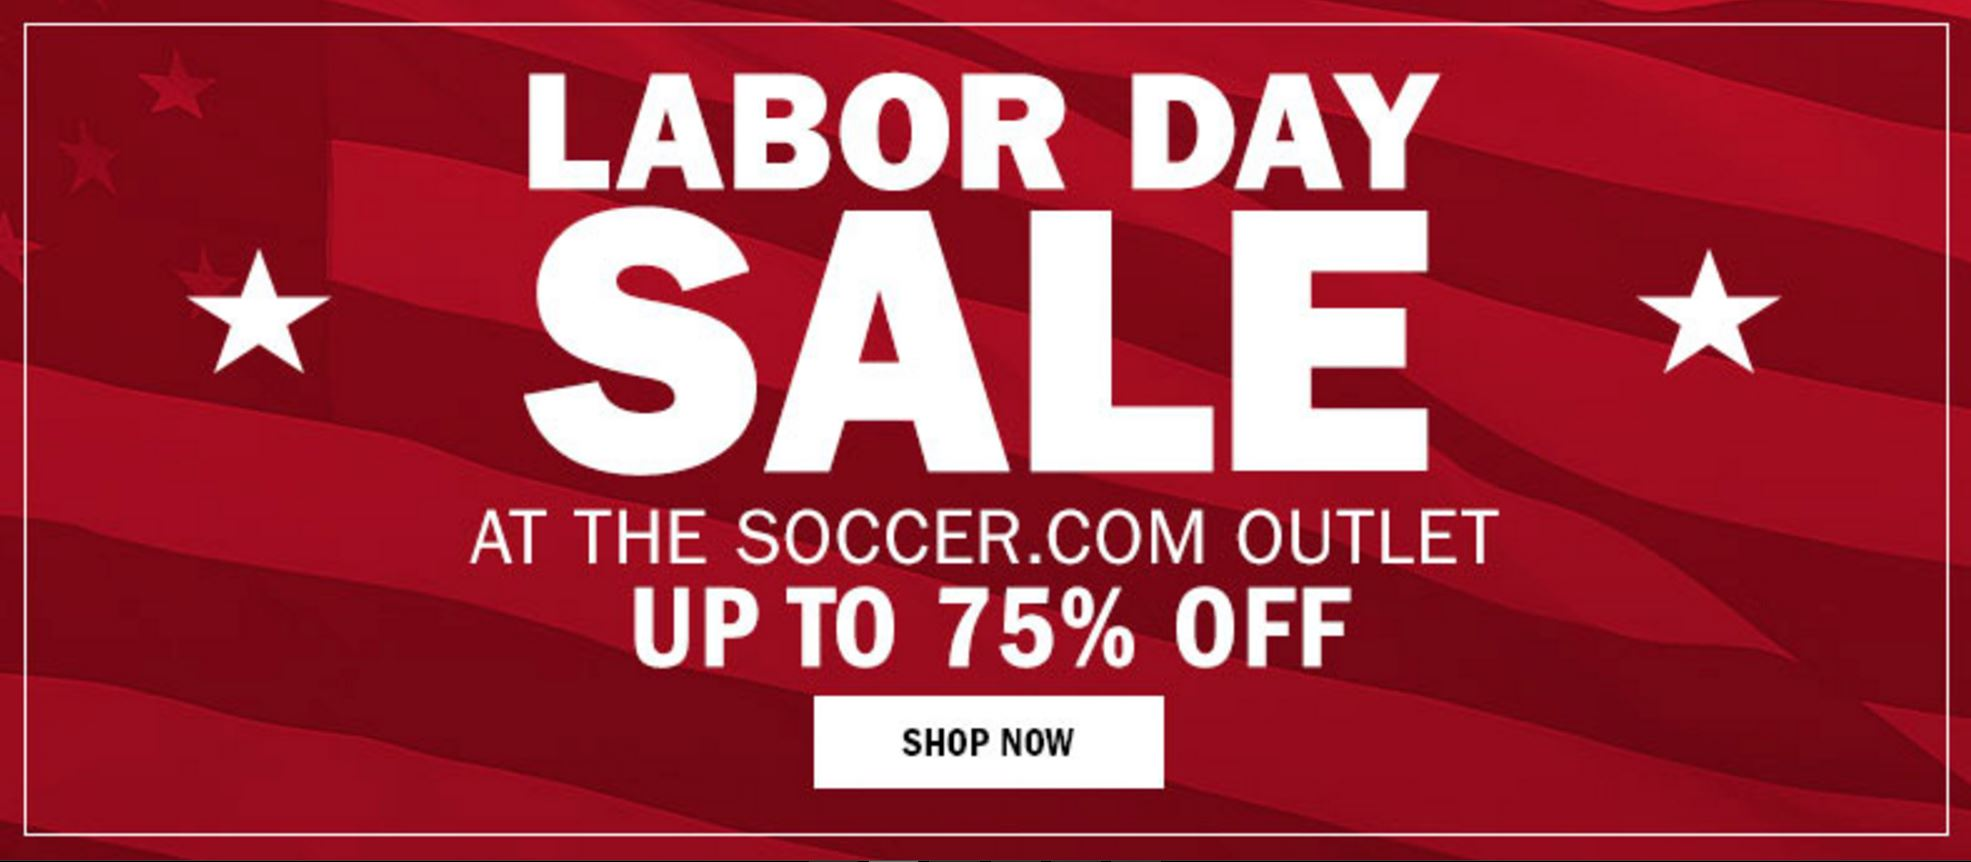 Best clothing deals this weekend